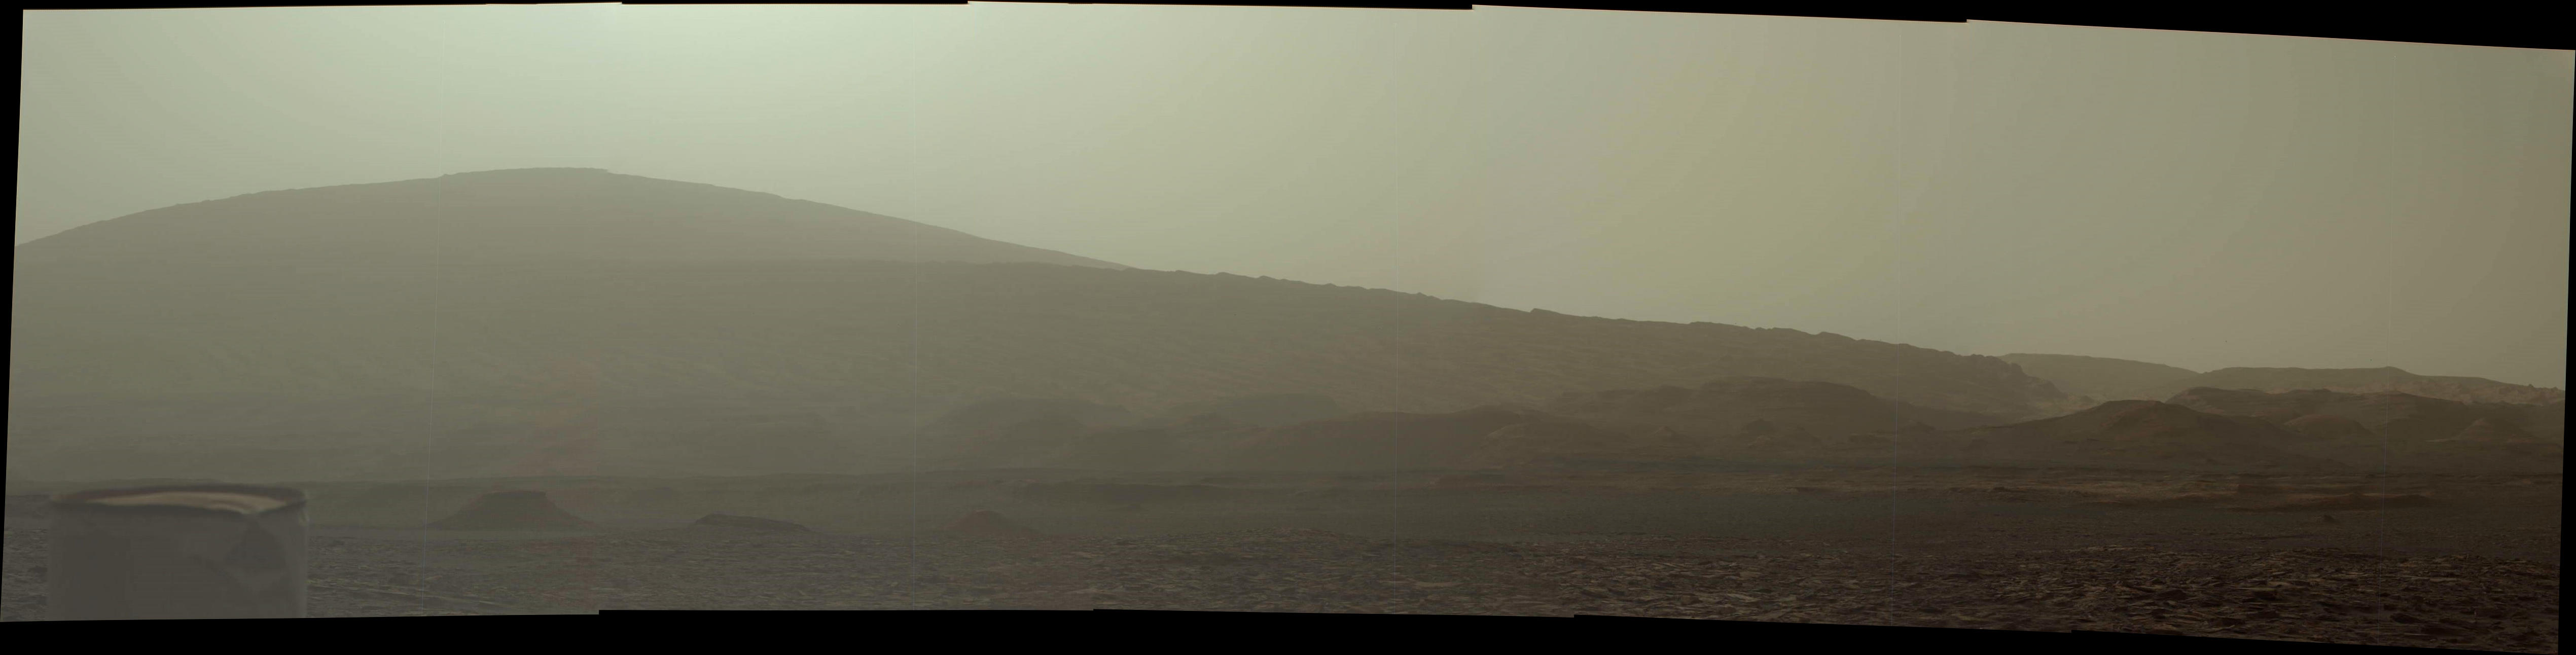 16-10-16-1492ml0075080140603688e01_dxxx_stitch-mt-sharp